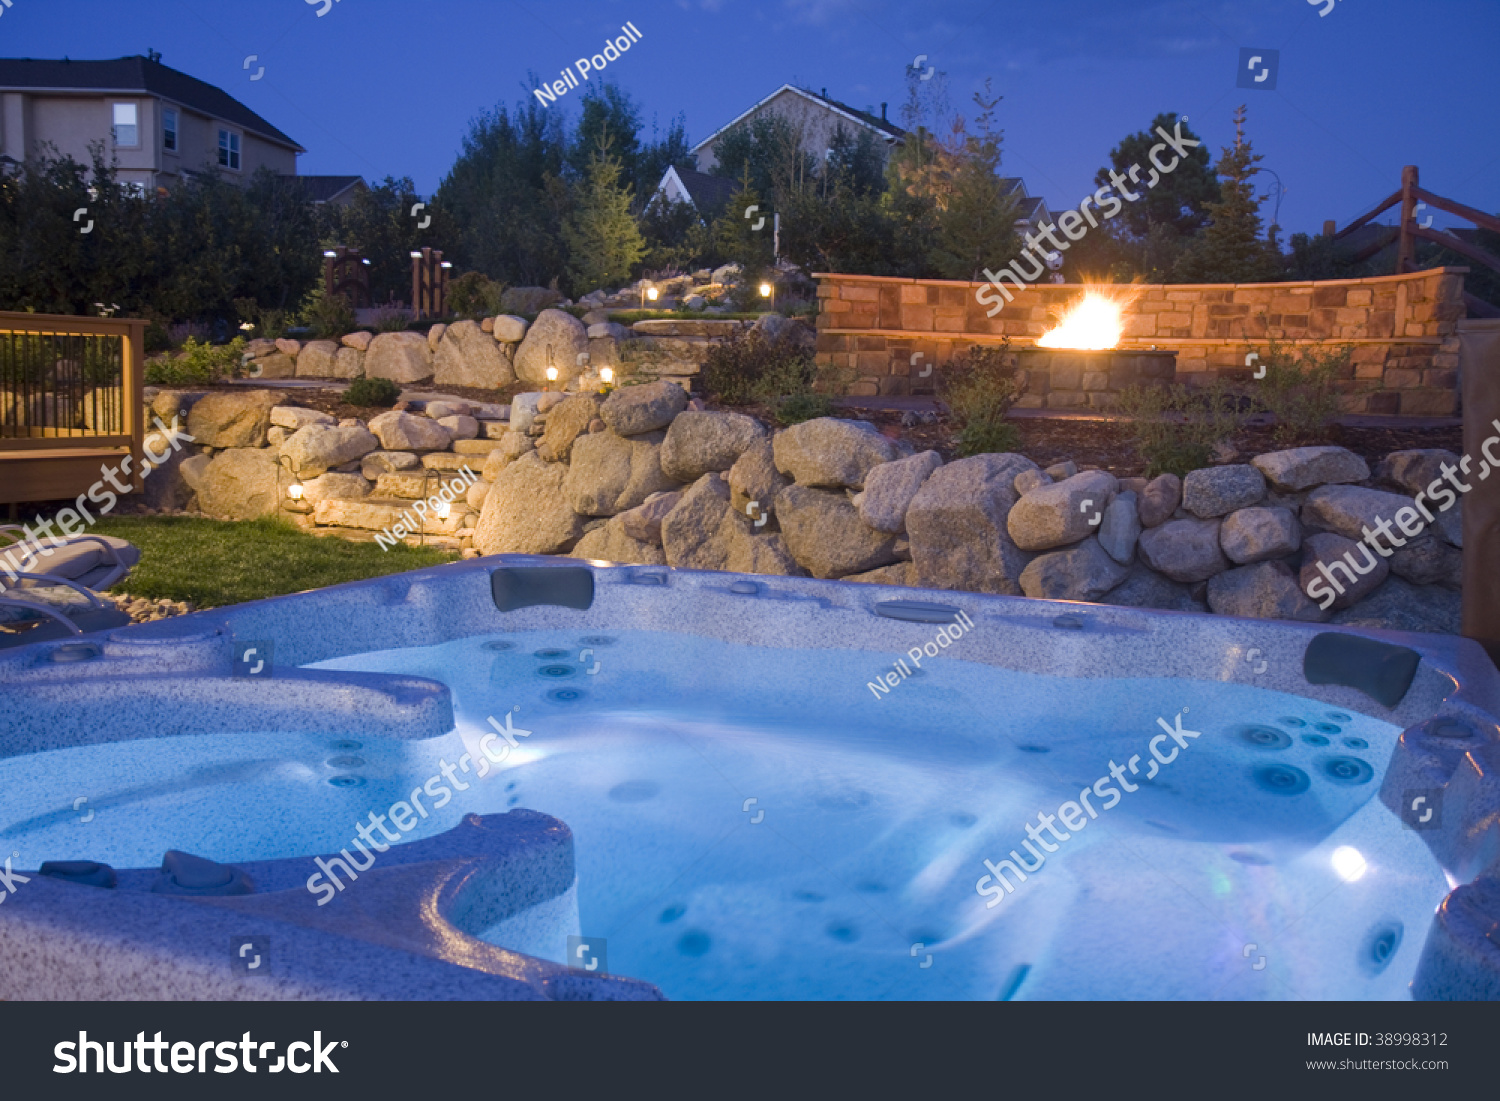 Awesome Backyard Hot Tub Fire Pit Stock Photo & Image (Royalty-Free ...